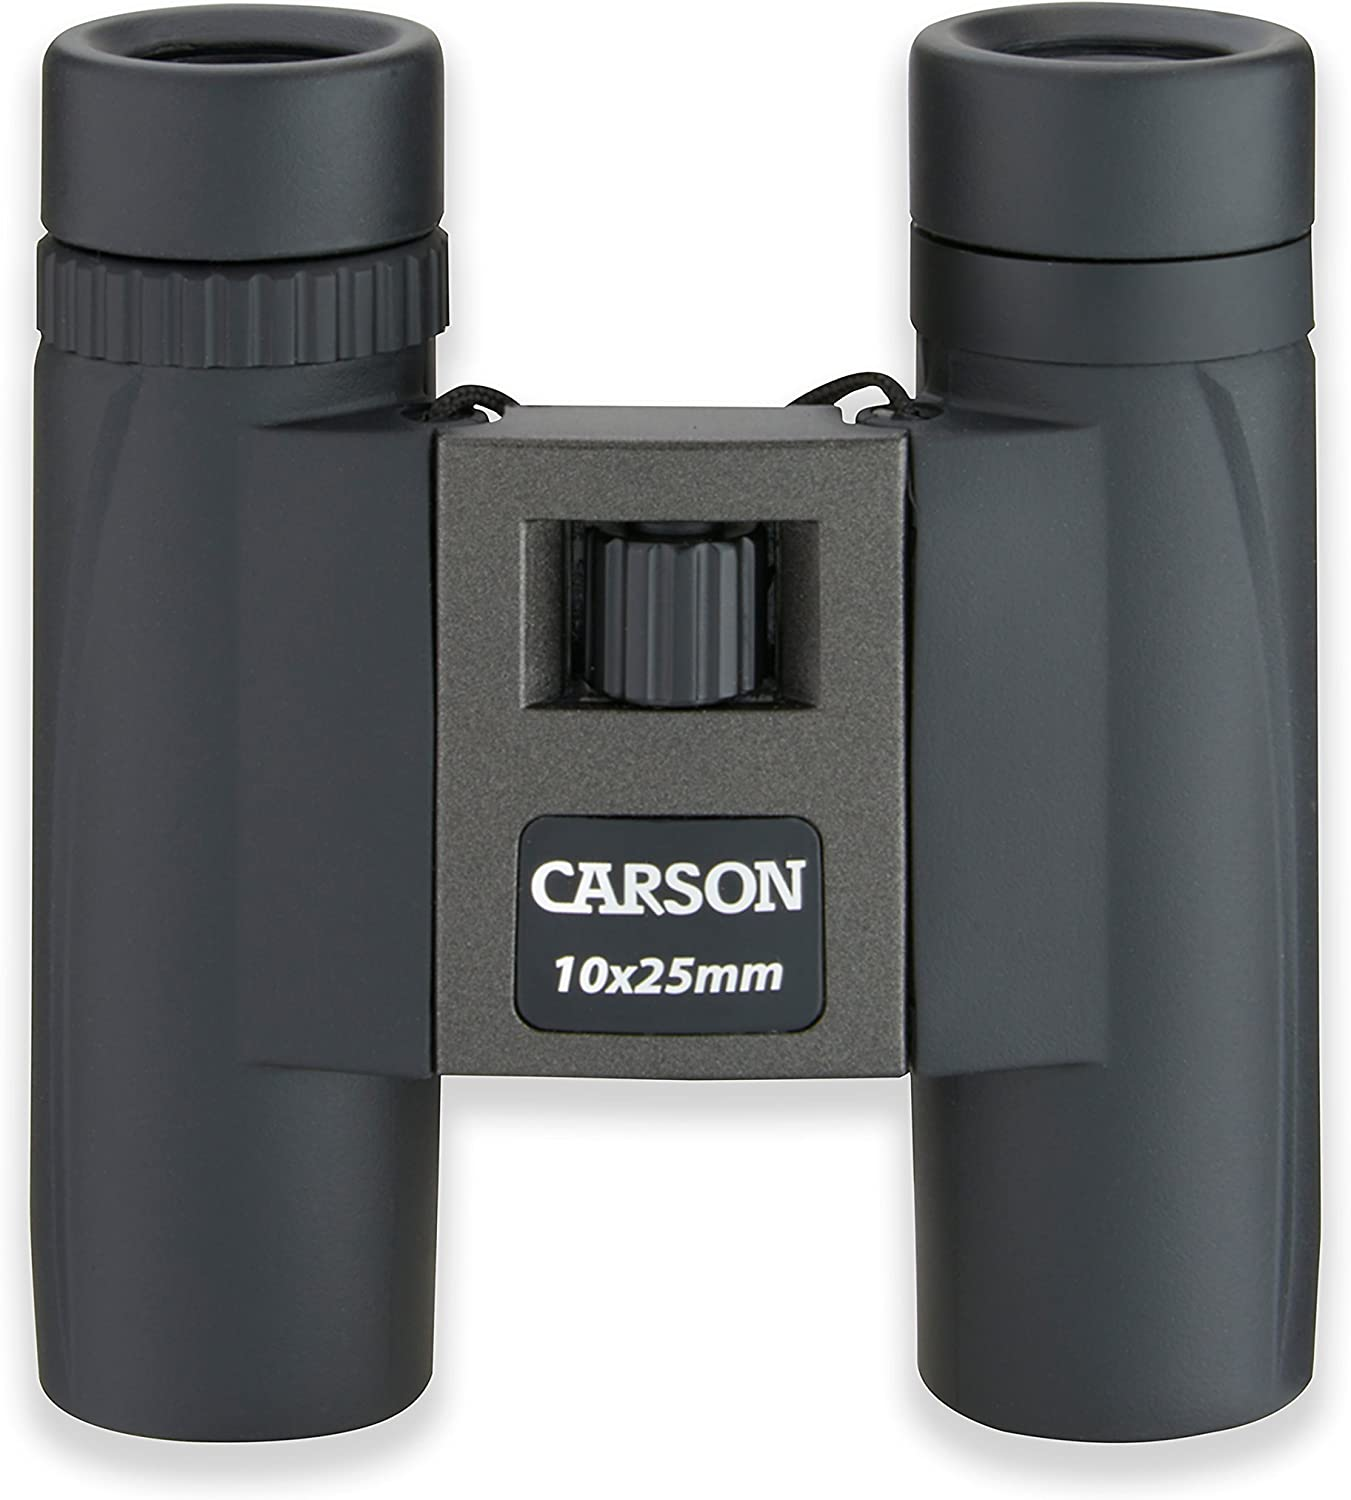 Carson TrailMaxx 8x21mm or 10x25mm Compact and Lightweight Camping, Hiking, Birding or Travel Binoculars TM-821, TM-025